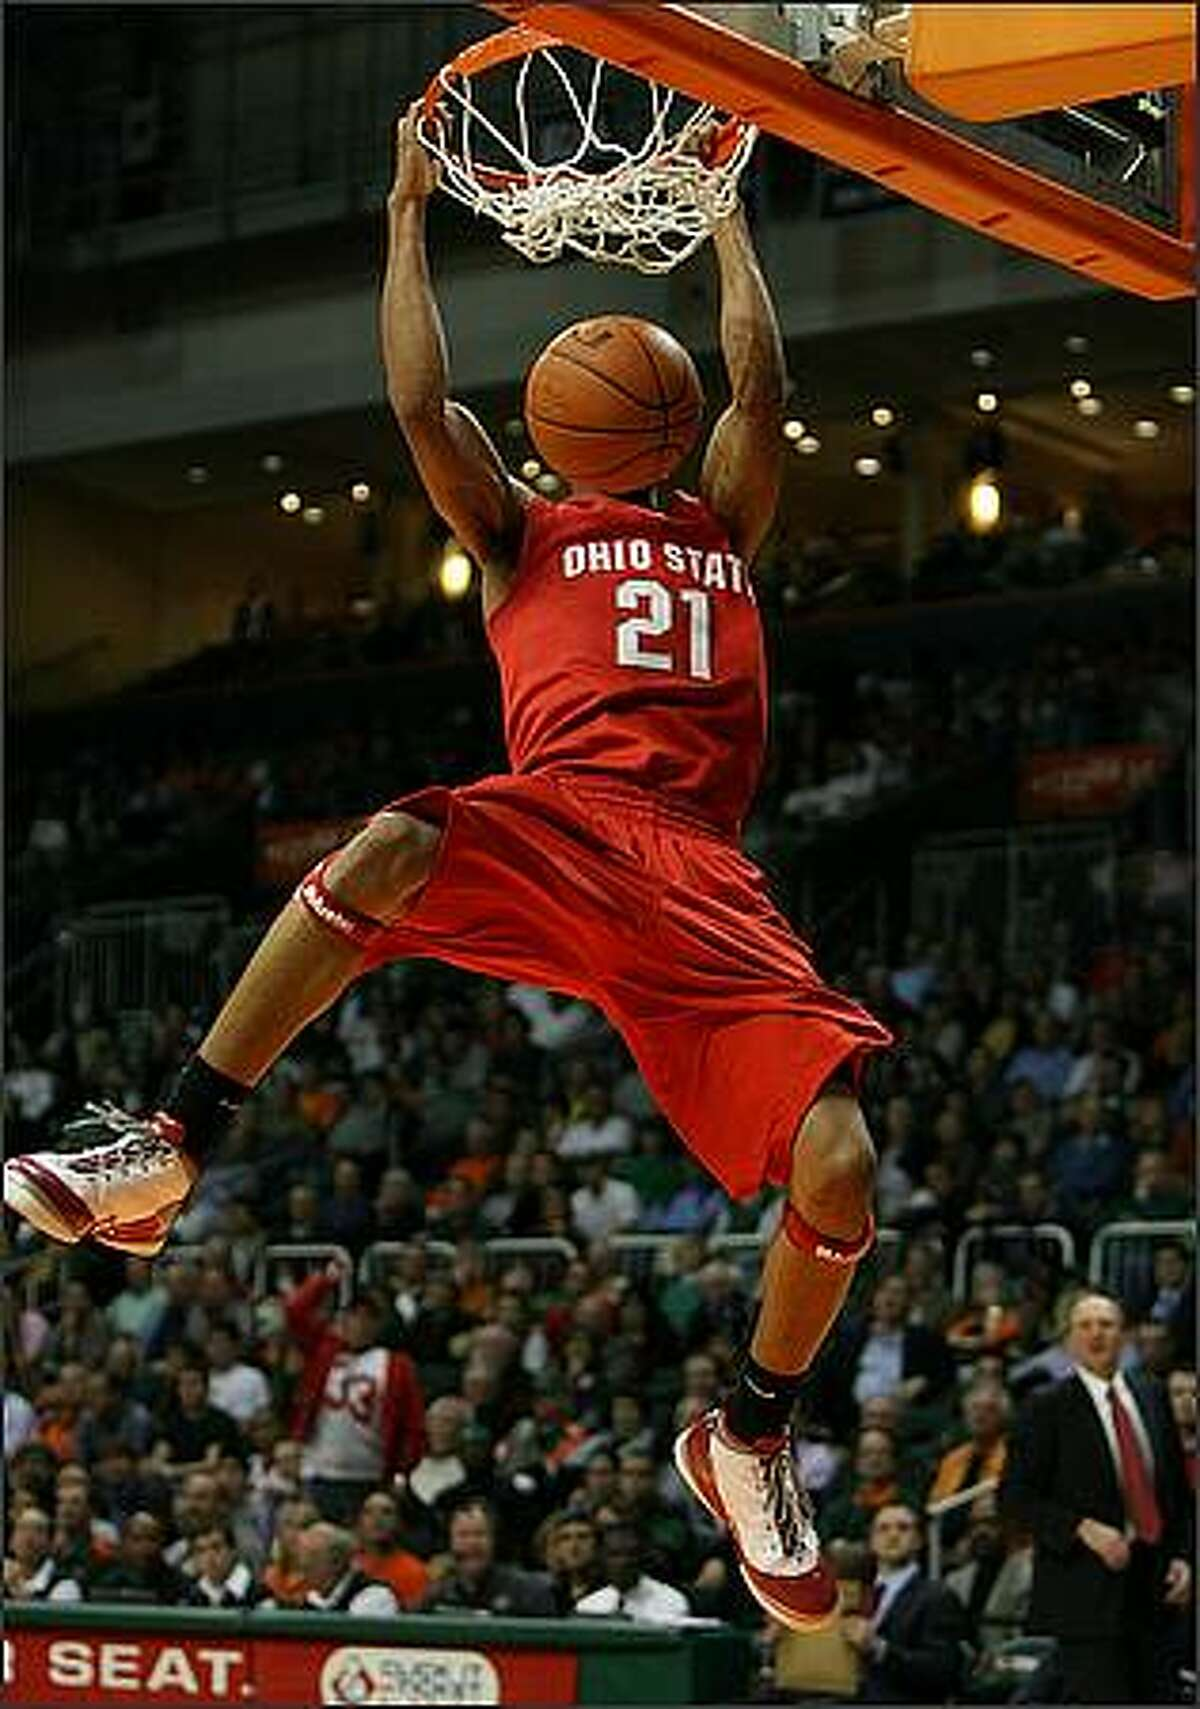 Evan Turner of the Ohio State Buckeyes gets a breakaway dunk while taking on the Miami Hurricanes at BankUnited Center in Coral Gables, Florida. Ohio State defeated Miami 73-68. (Photo by Doug Benc/Getty Images)